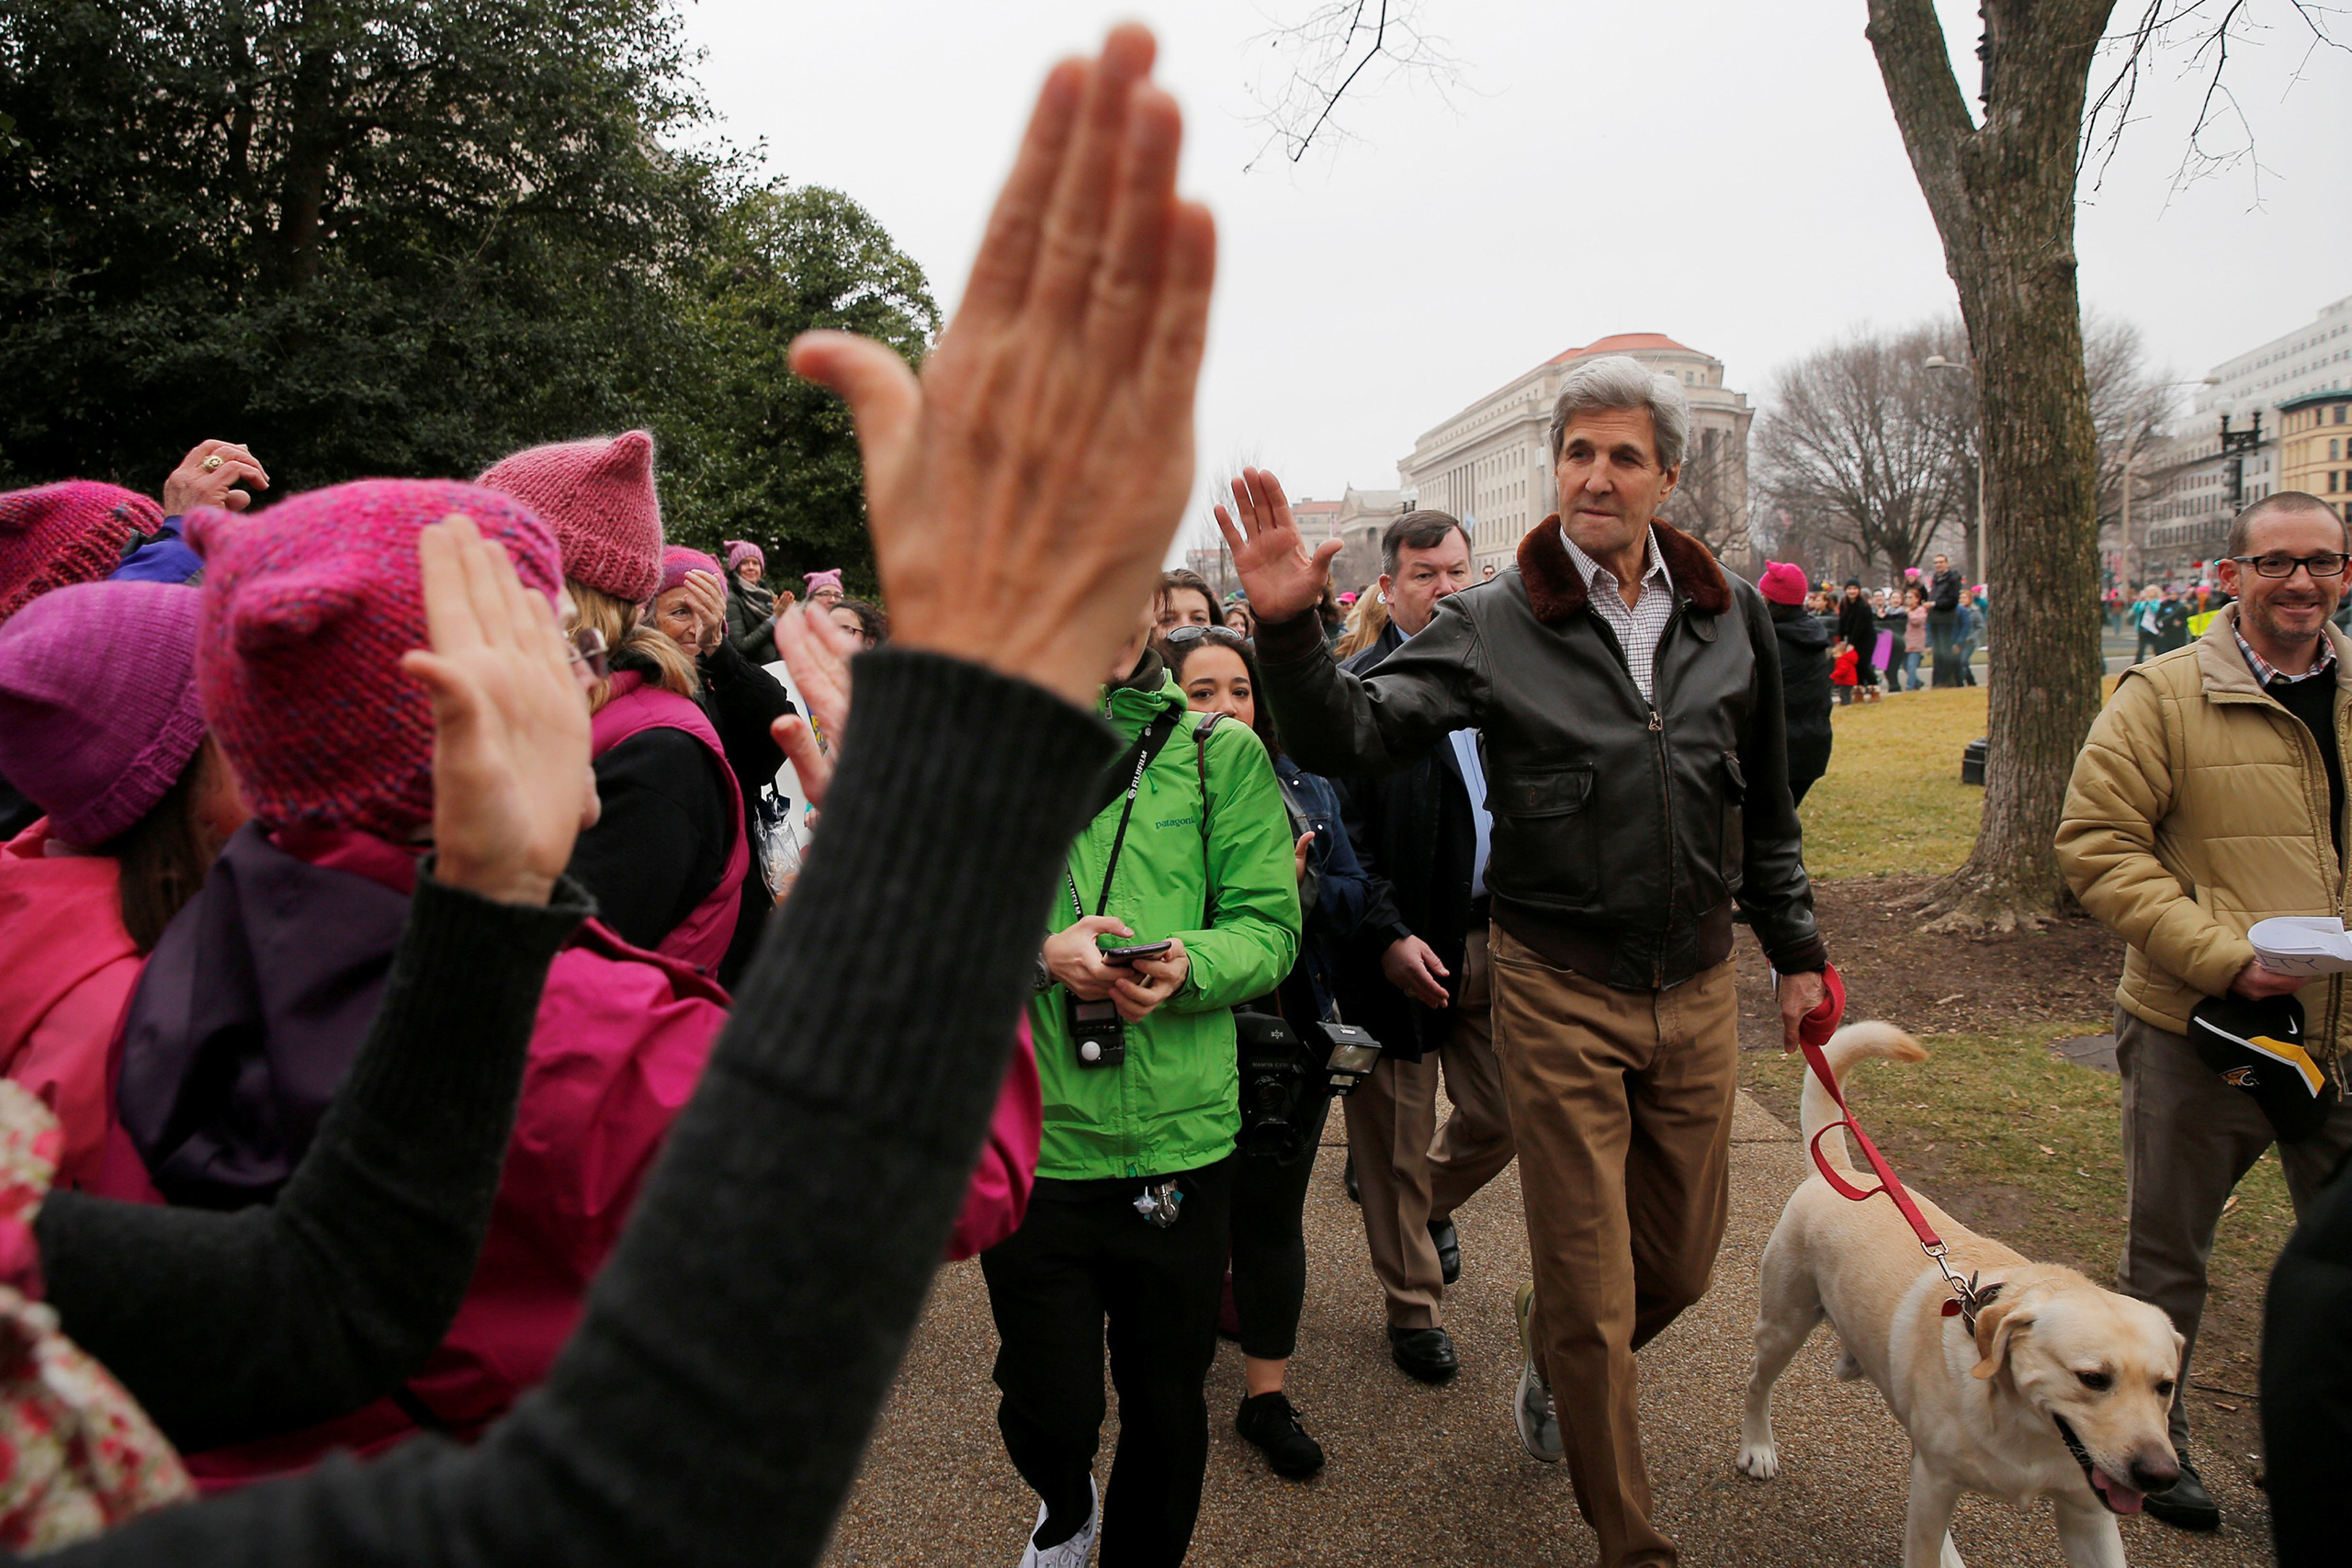 Former U.S. Secretary of State John Kerry walks his dog to join the Women's March on Washington, following the inauguration of U.S. President Donald Trump, on Jan. 21, 2017.